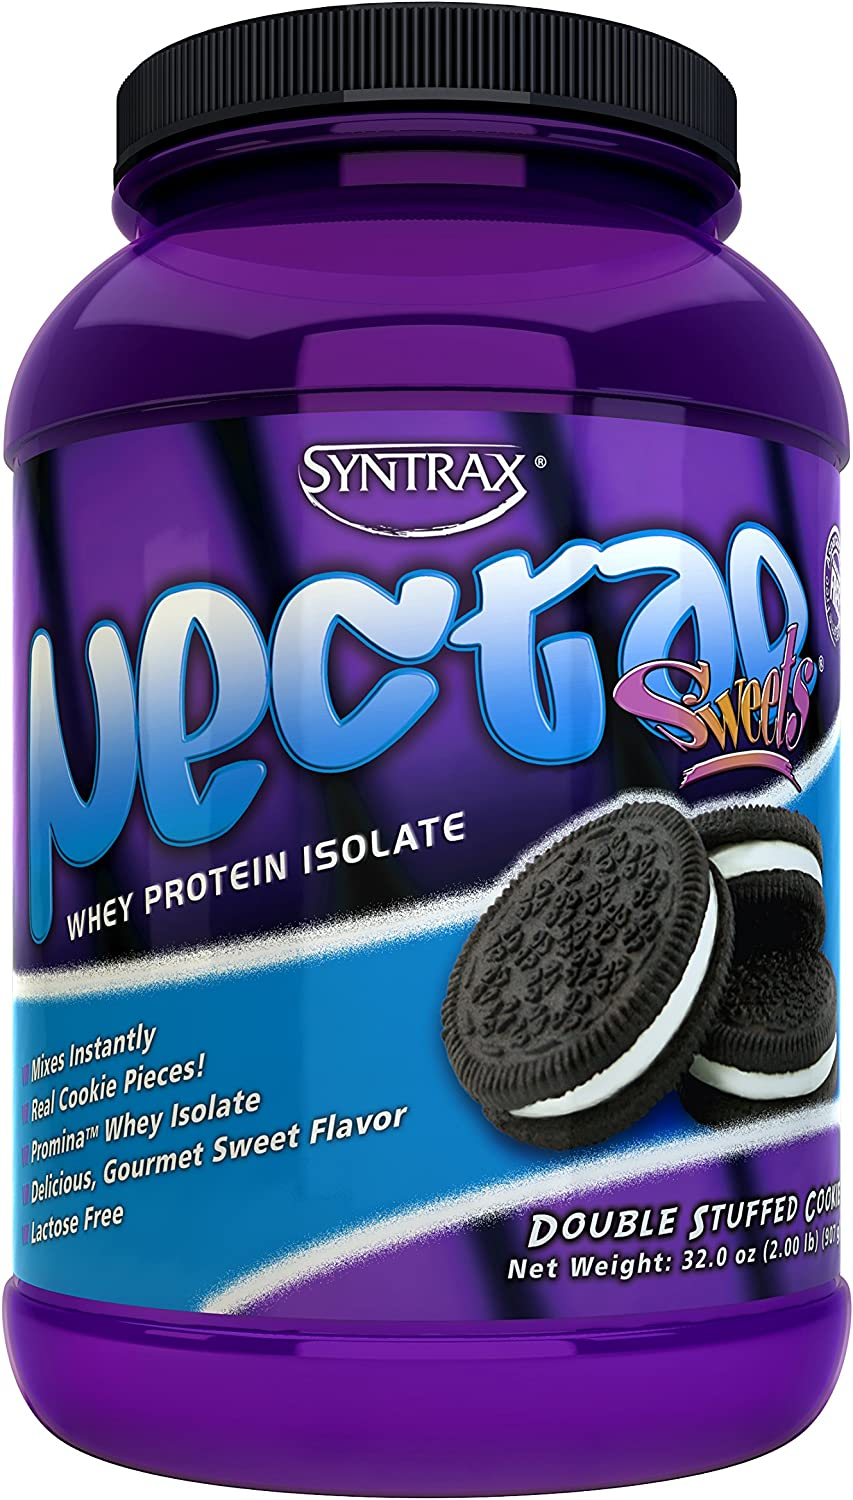 Nectar Sweets, Double Stuffed Cookie, 2 Pounds